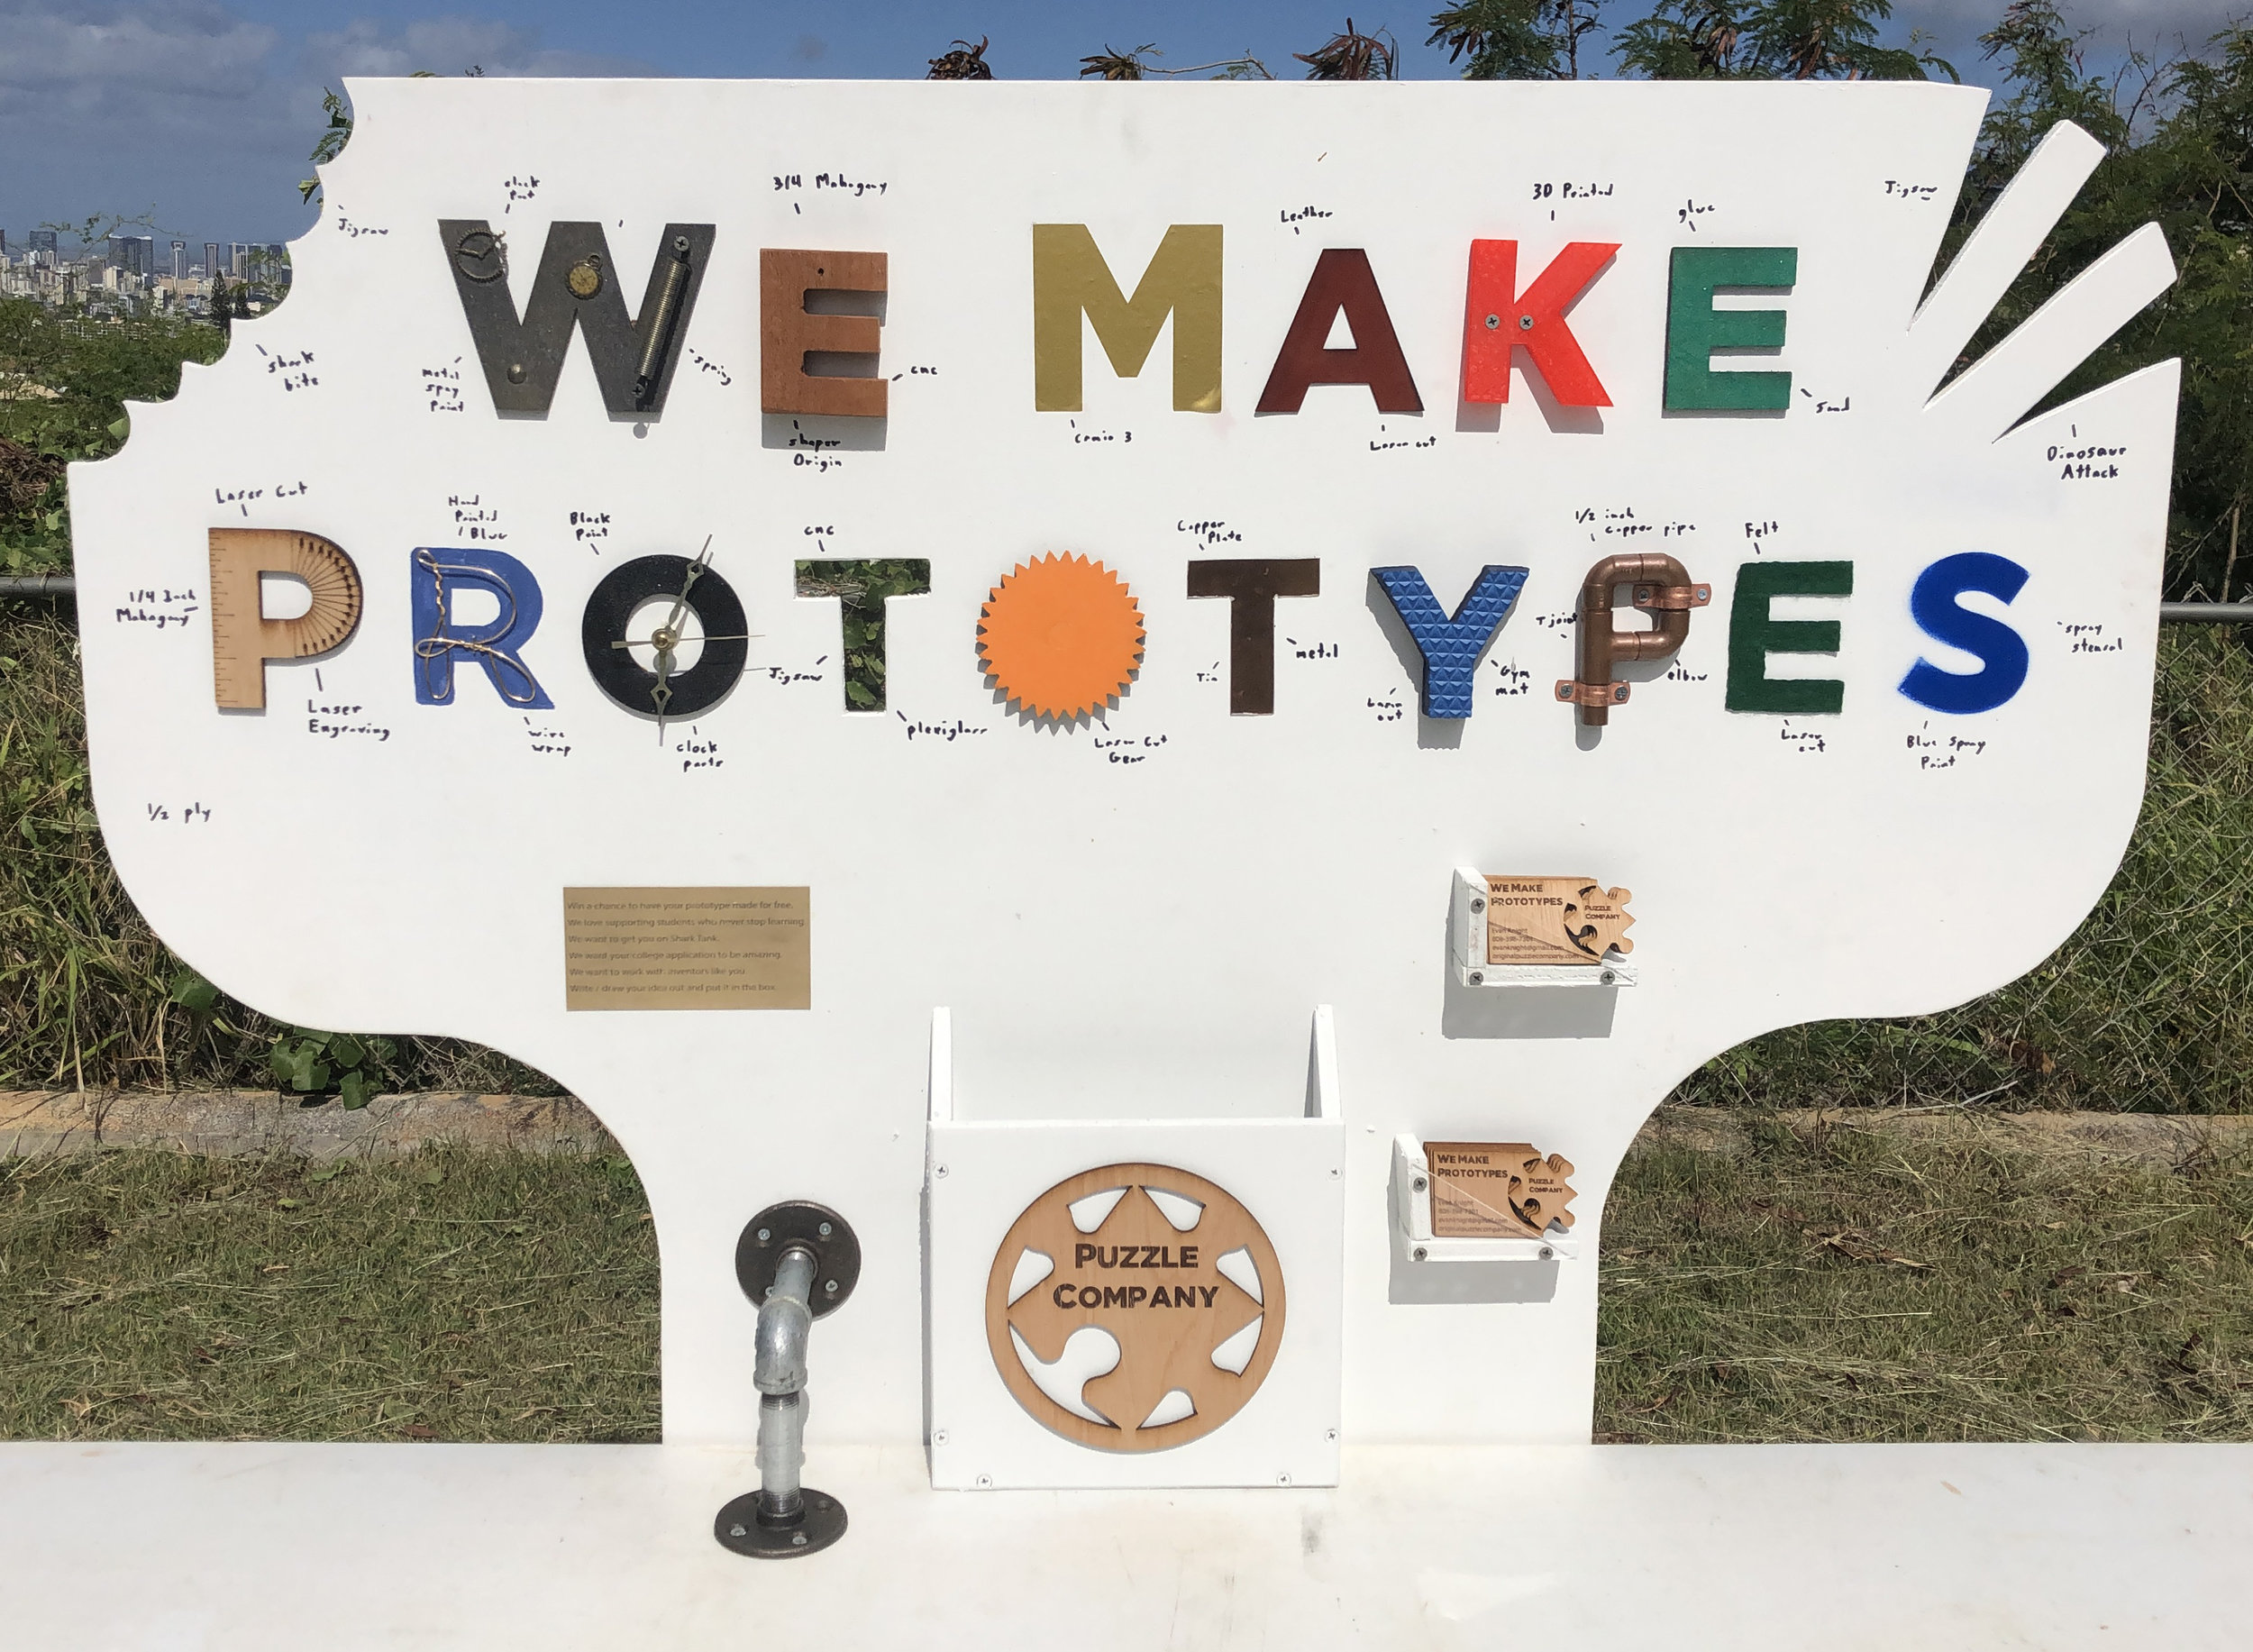 We Make Prototypes - Yes, we make prototypes. We make most anything. We pride ourselves on making the unusual. We love new inventions. We want to help you get on Shark Tank or maybe just recreate that long-forgotten object from our youth.